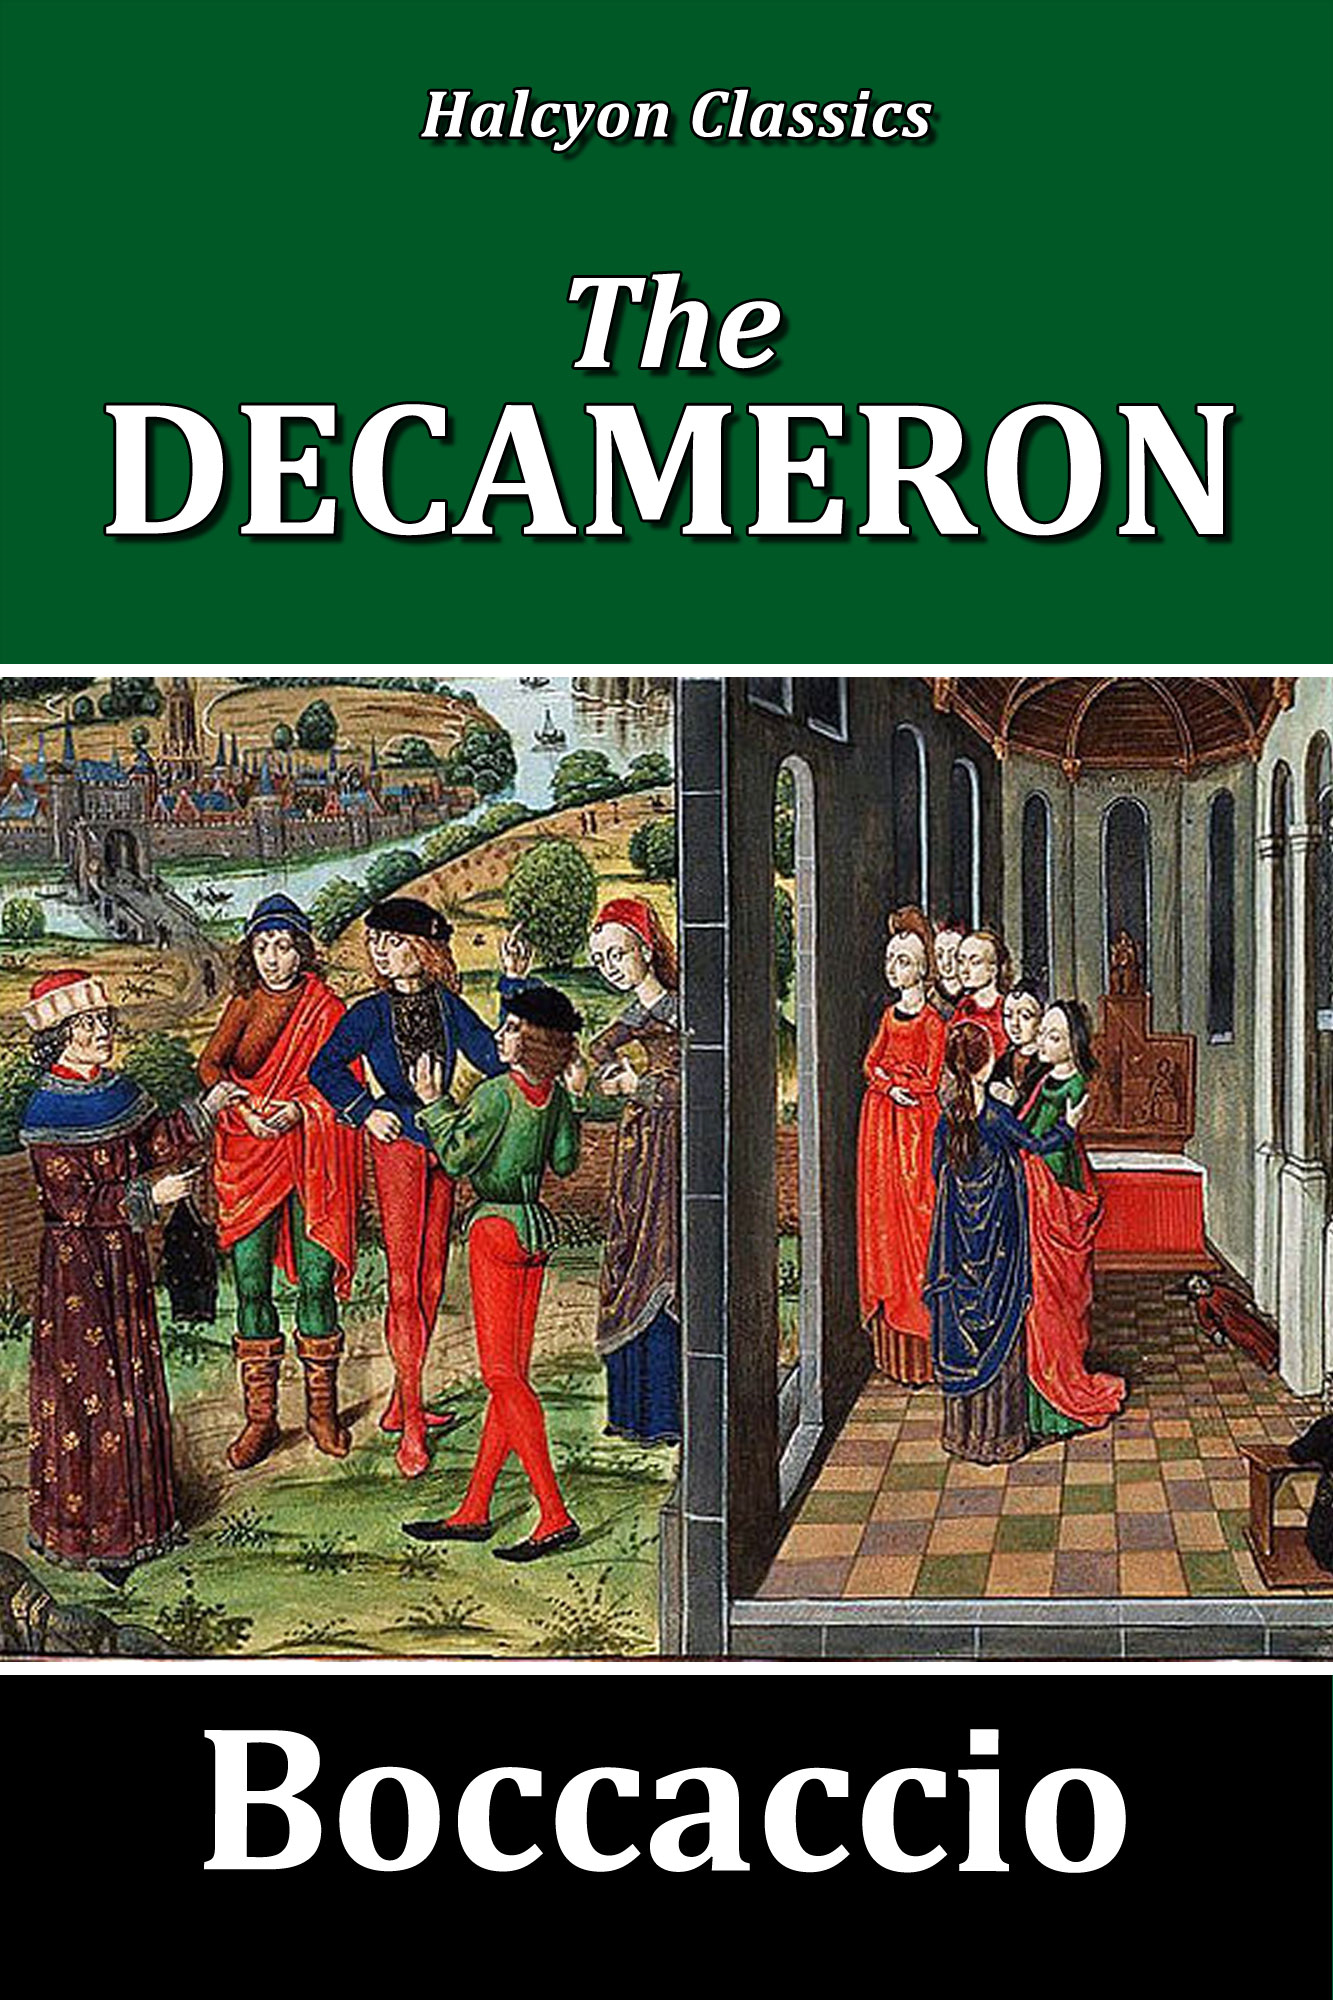 an analysis of sexism in the decameron tales by boccaccio The women of arthurian legend mirror the influence an analysis of the characters in candide of mammy an analysis of sexism in the decameron tales by boccaccio an.